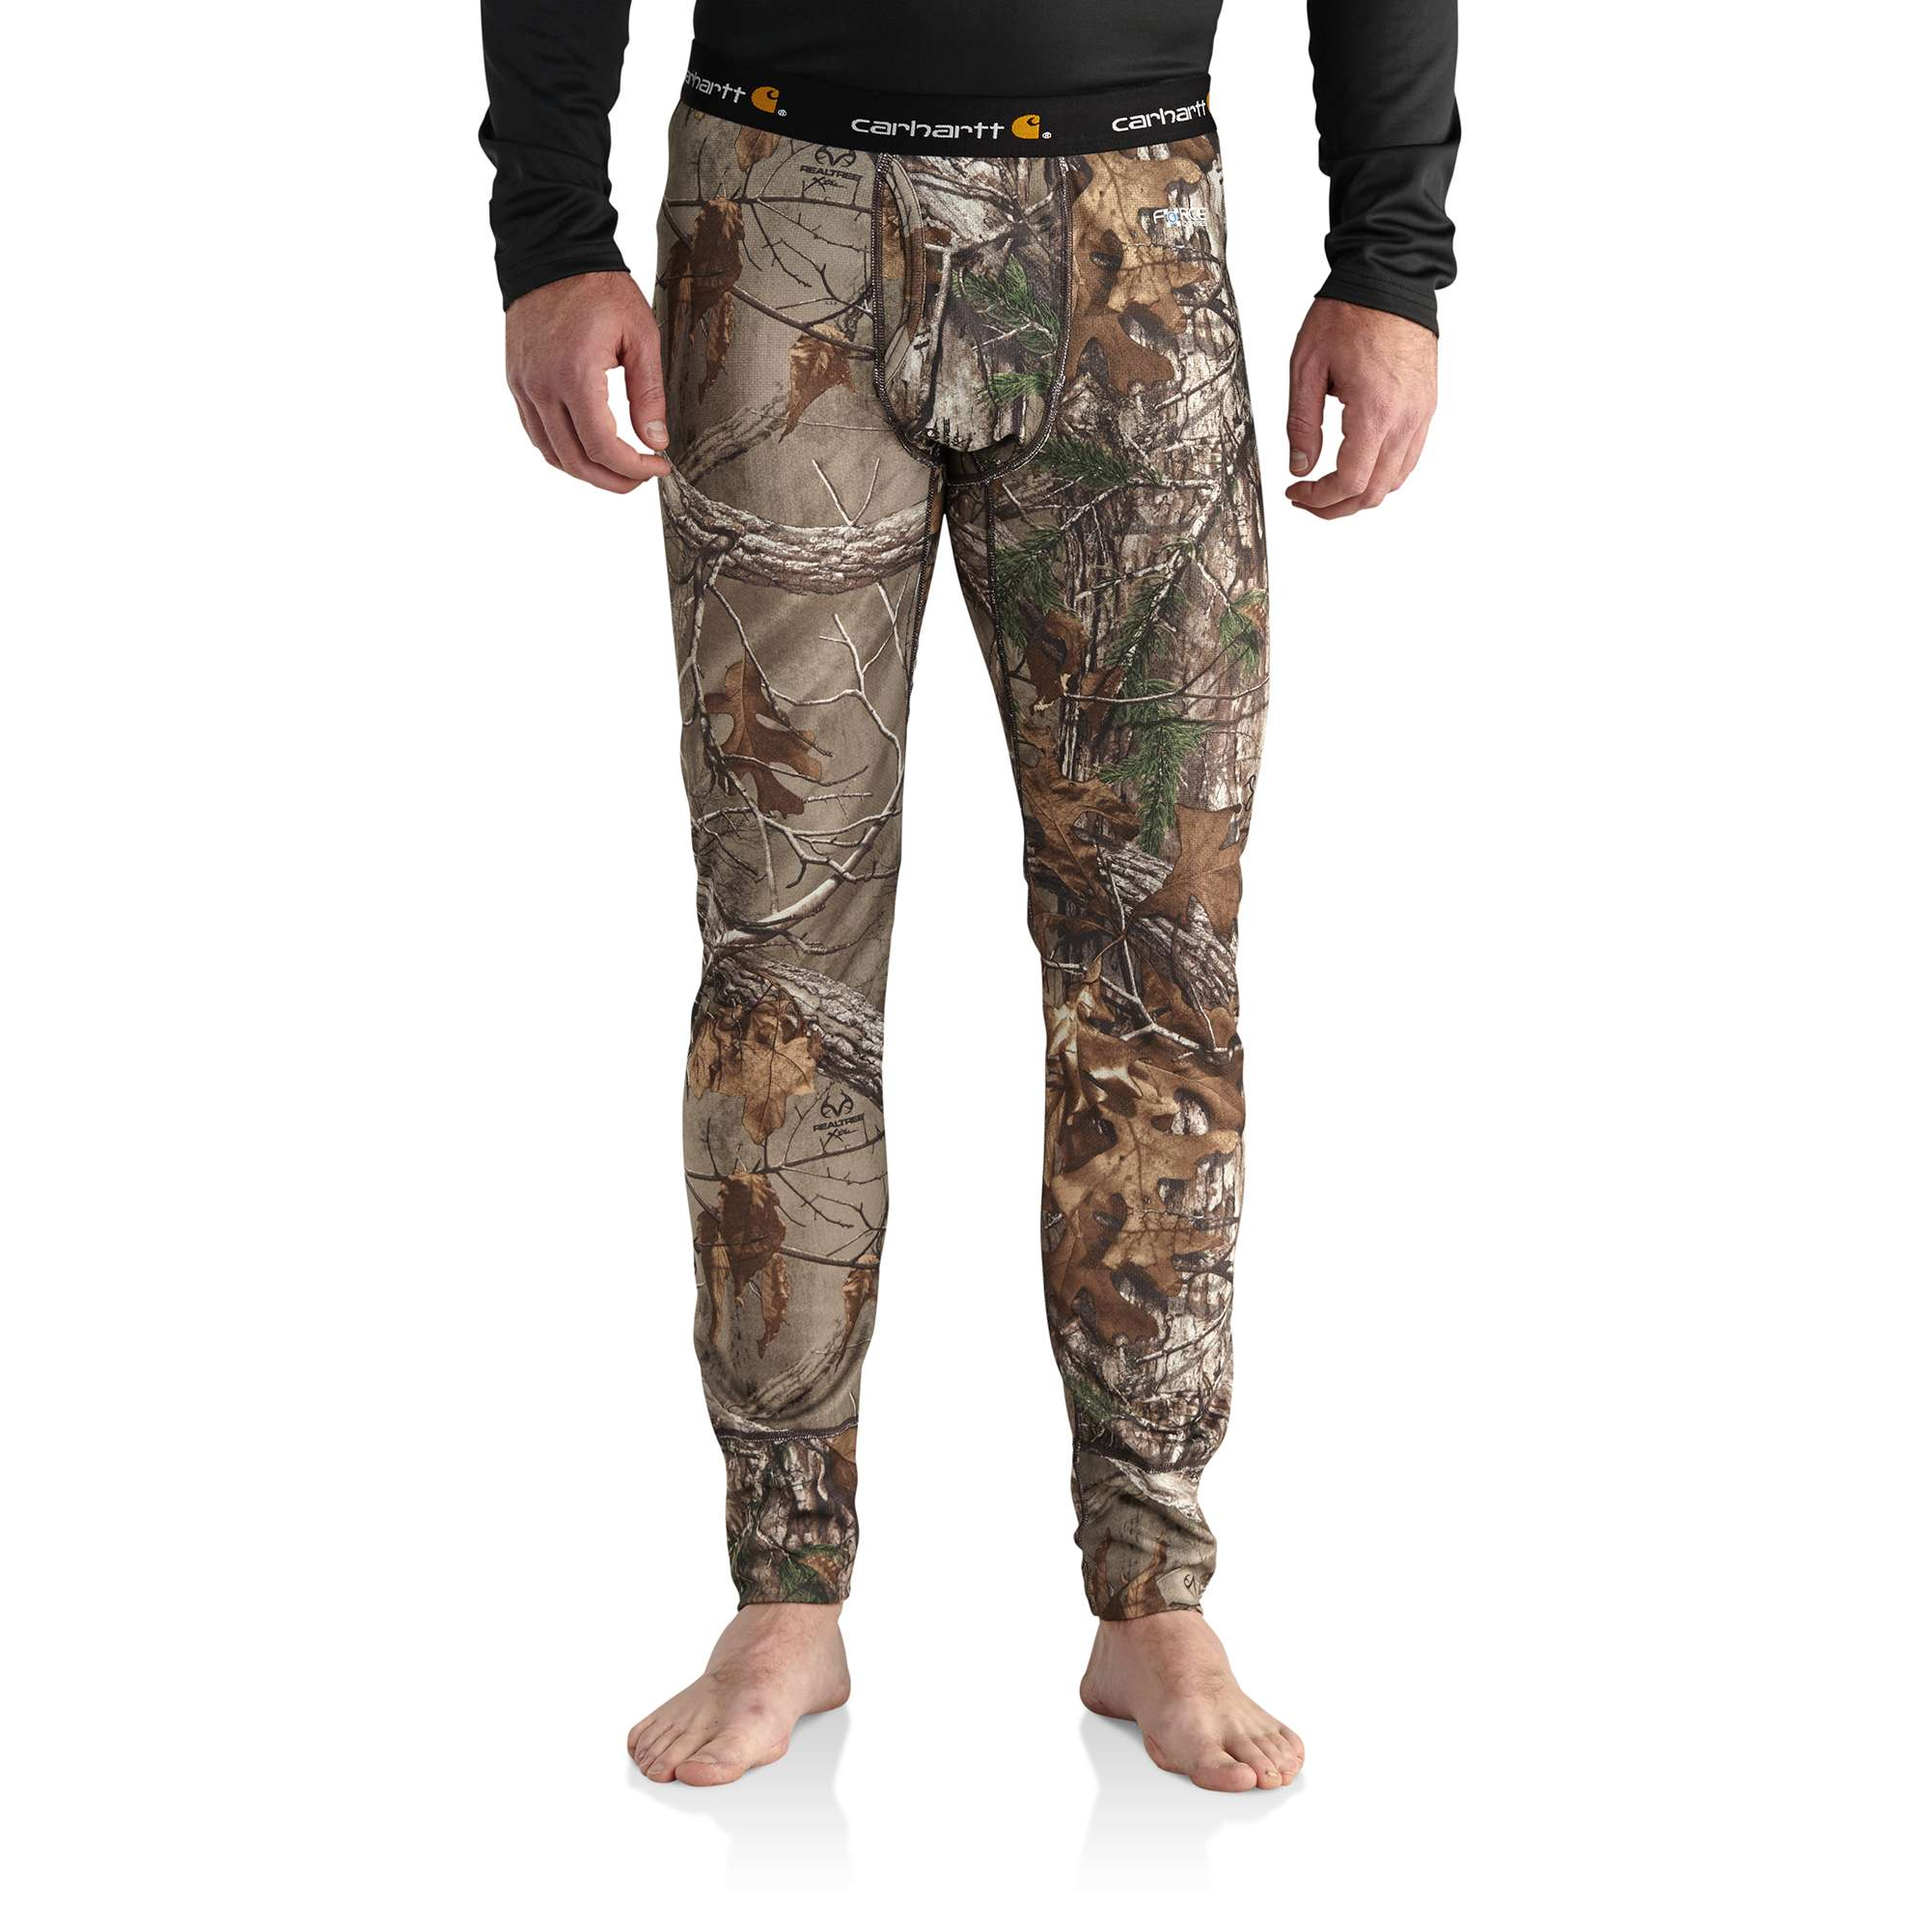 Carhartt Carhartt Base Force Extremes Cold Weather Camo Bottom